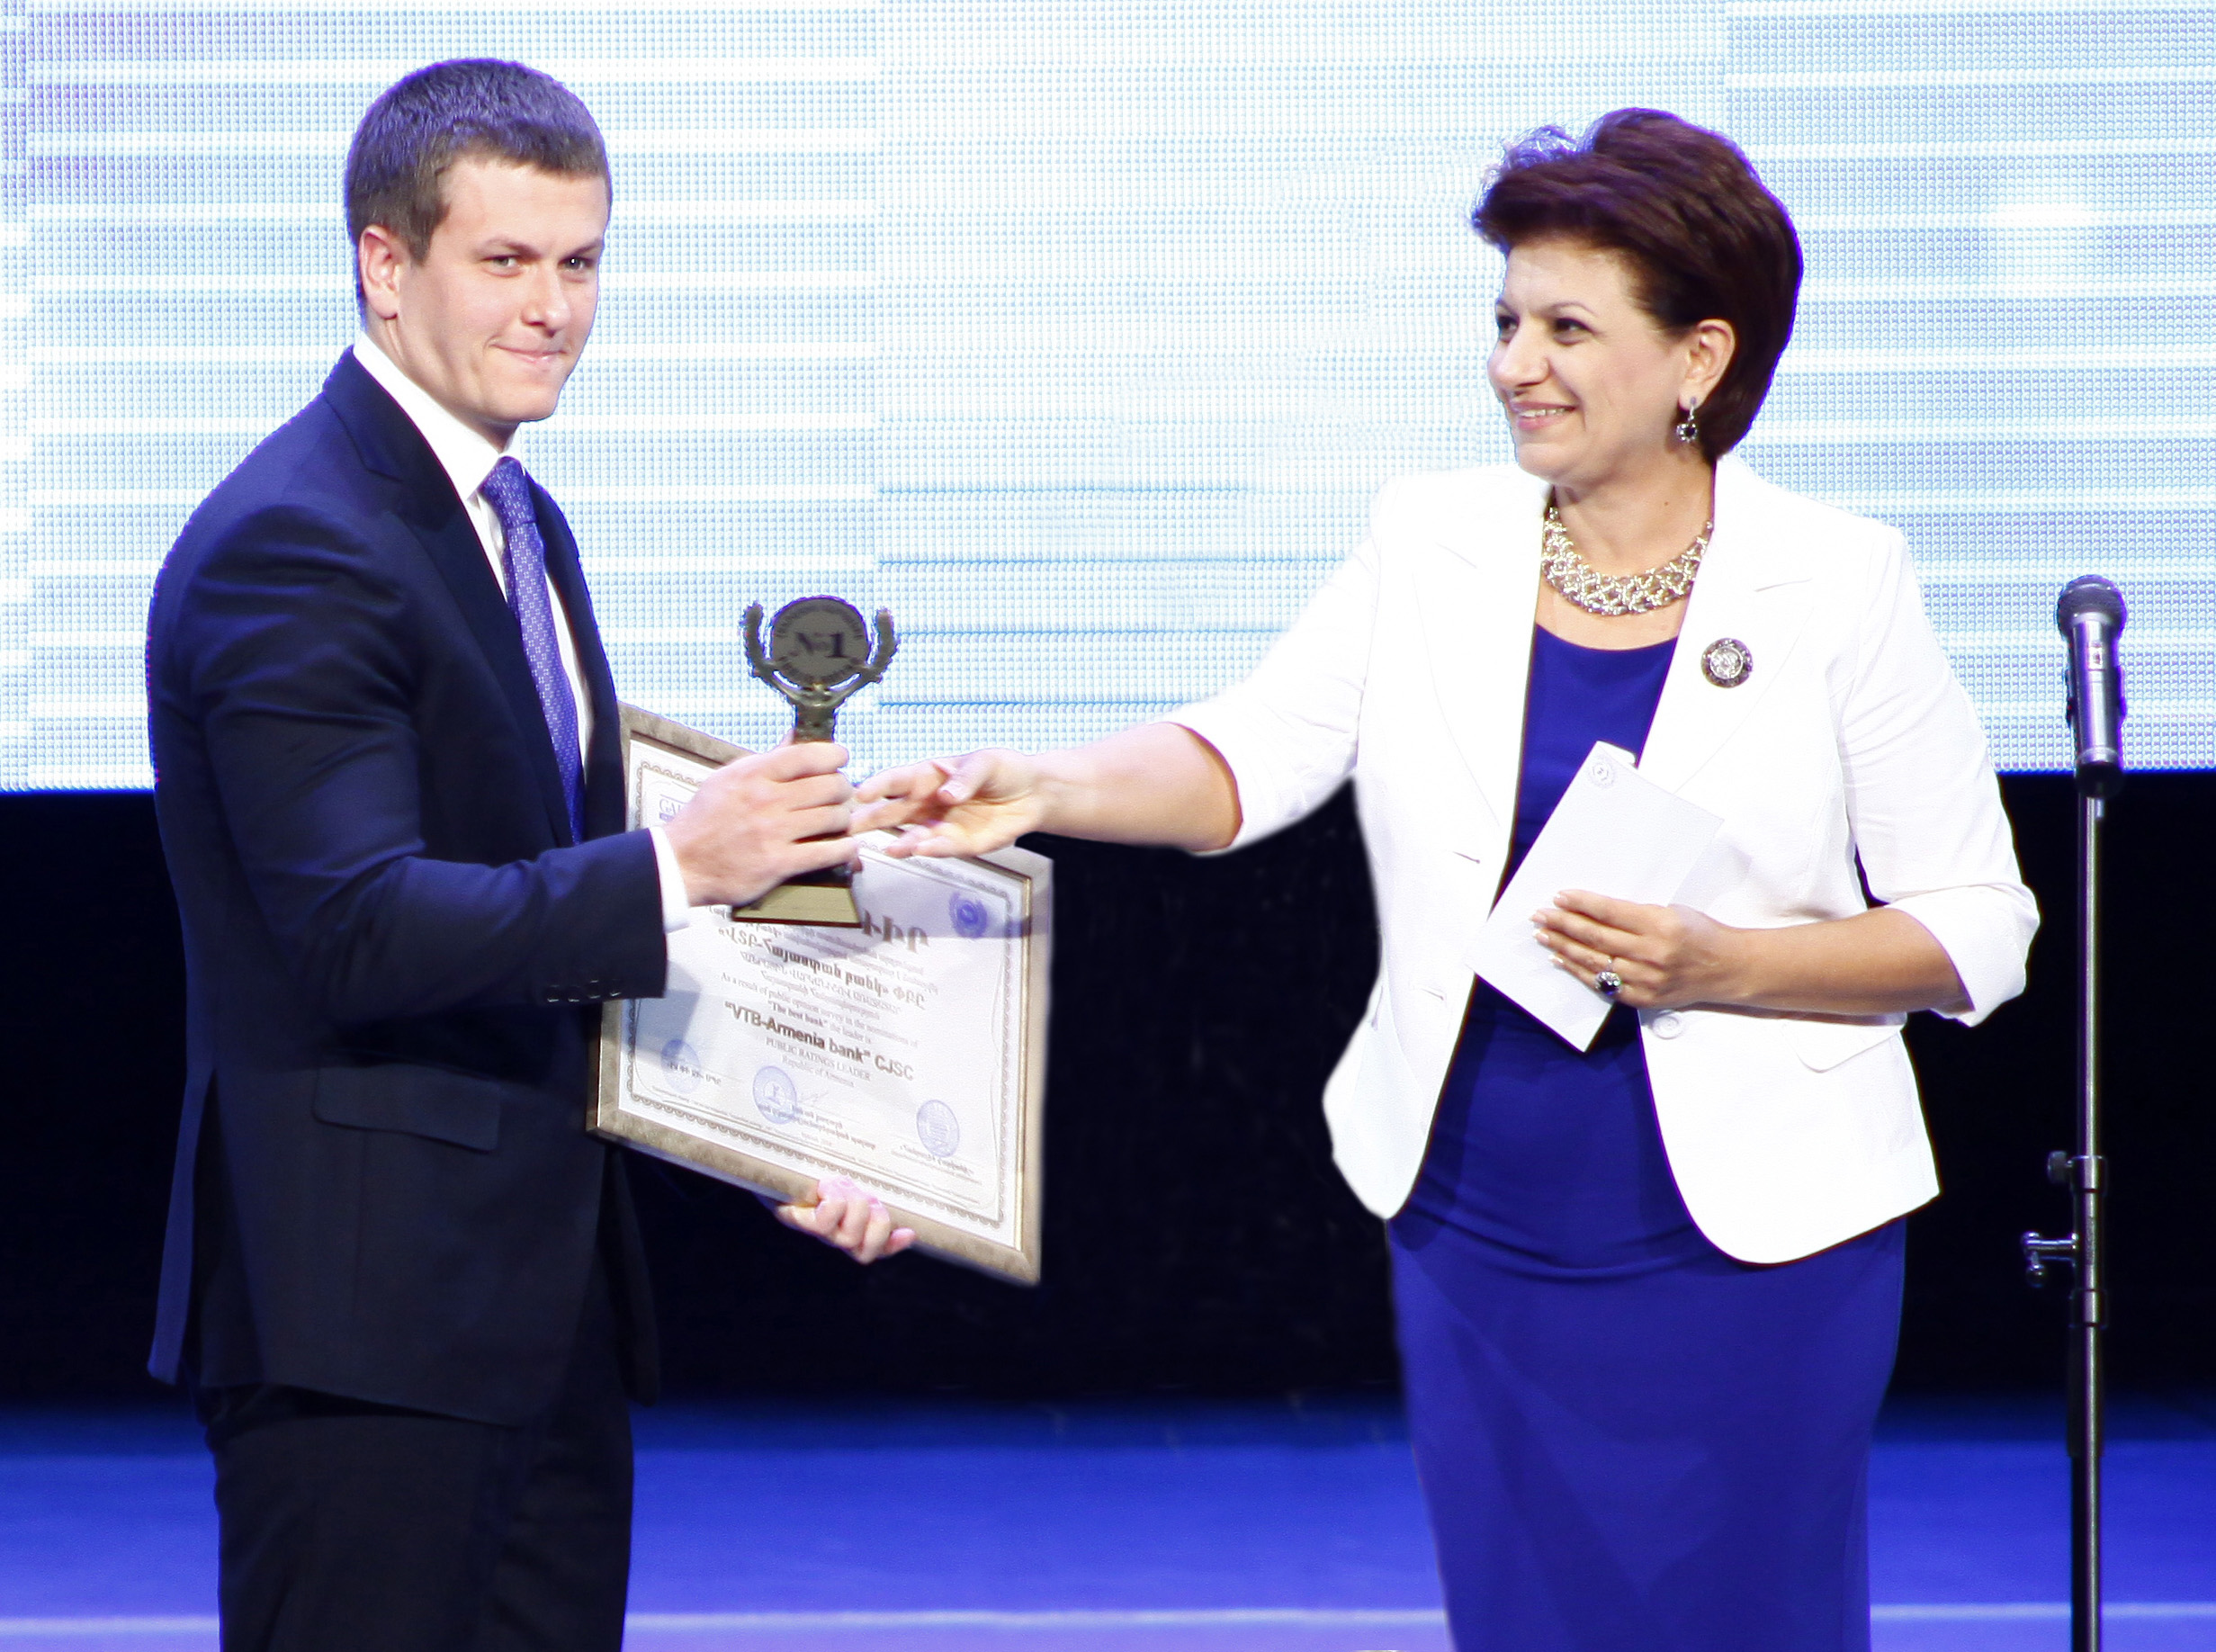 Yuri Gusev, left, of VTB Bank Armenia accepts the